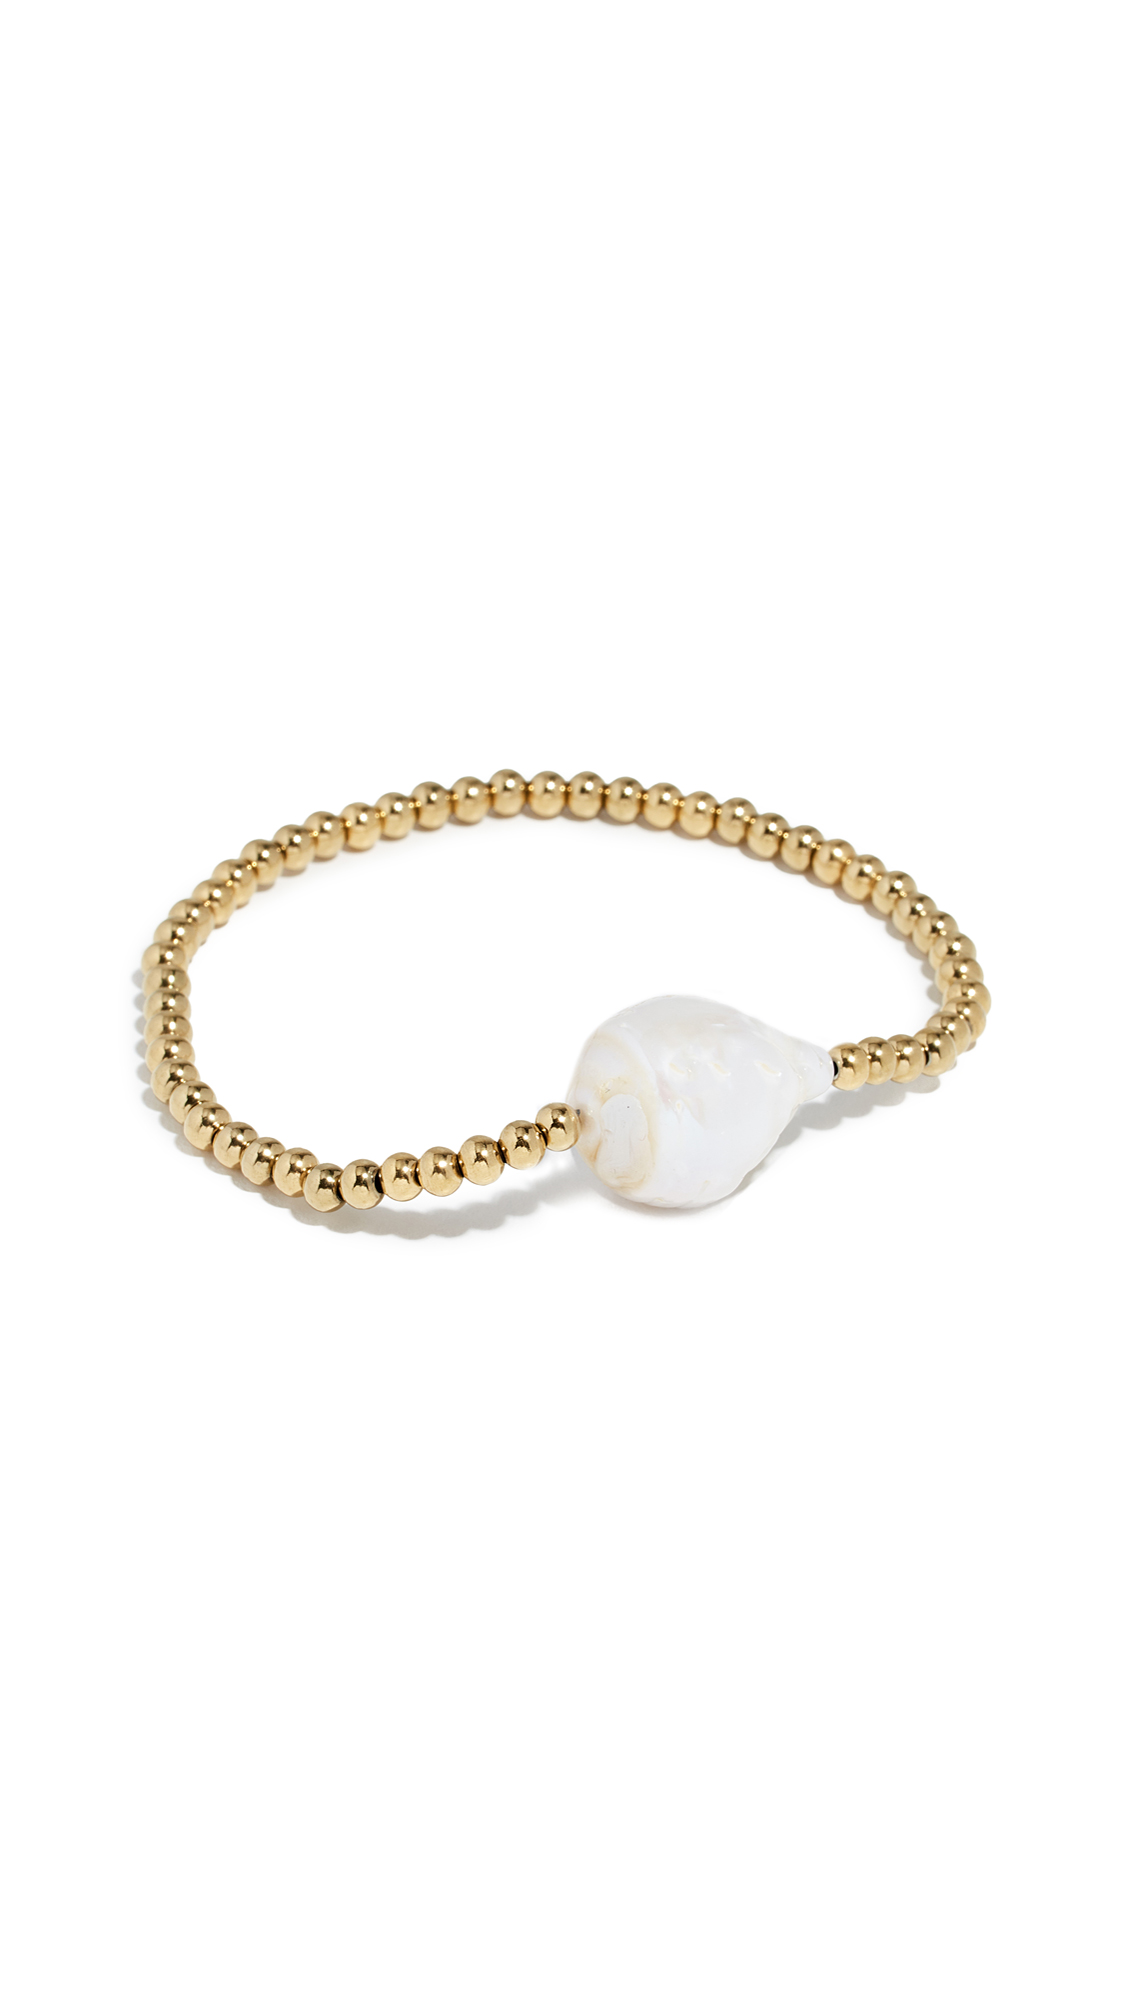 RELIQUIA Single Keshi Cultured Pearl Bangle Bracelet in Yellow Gold